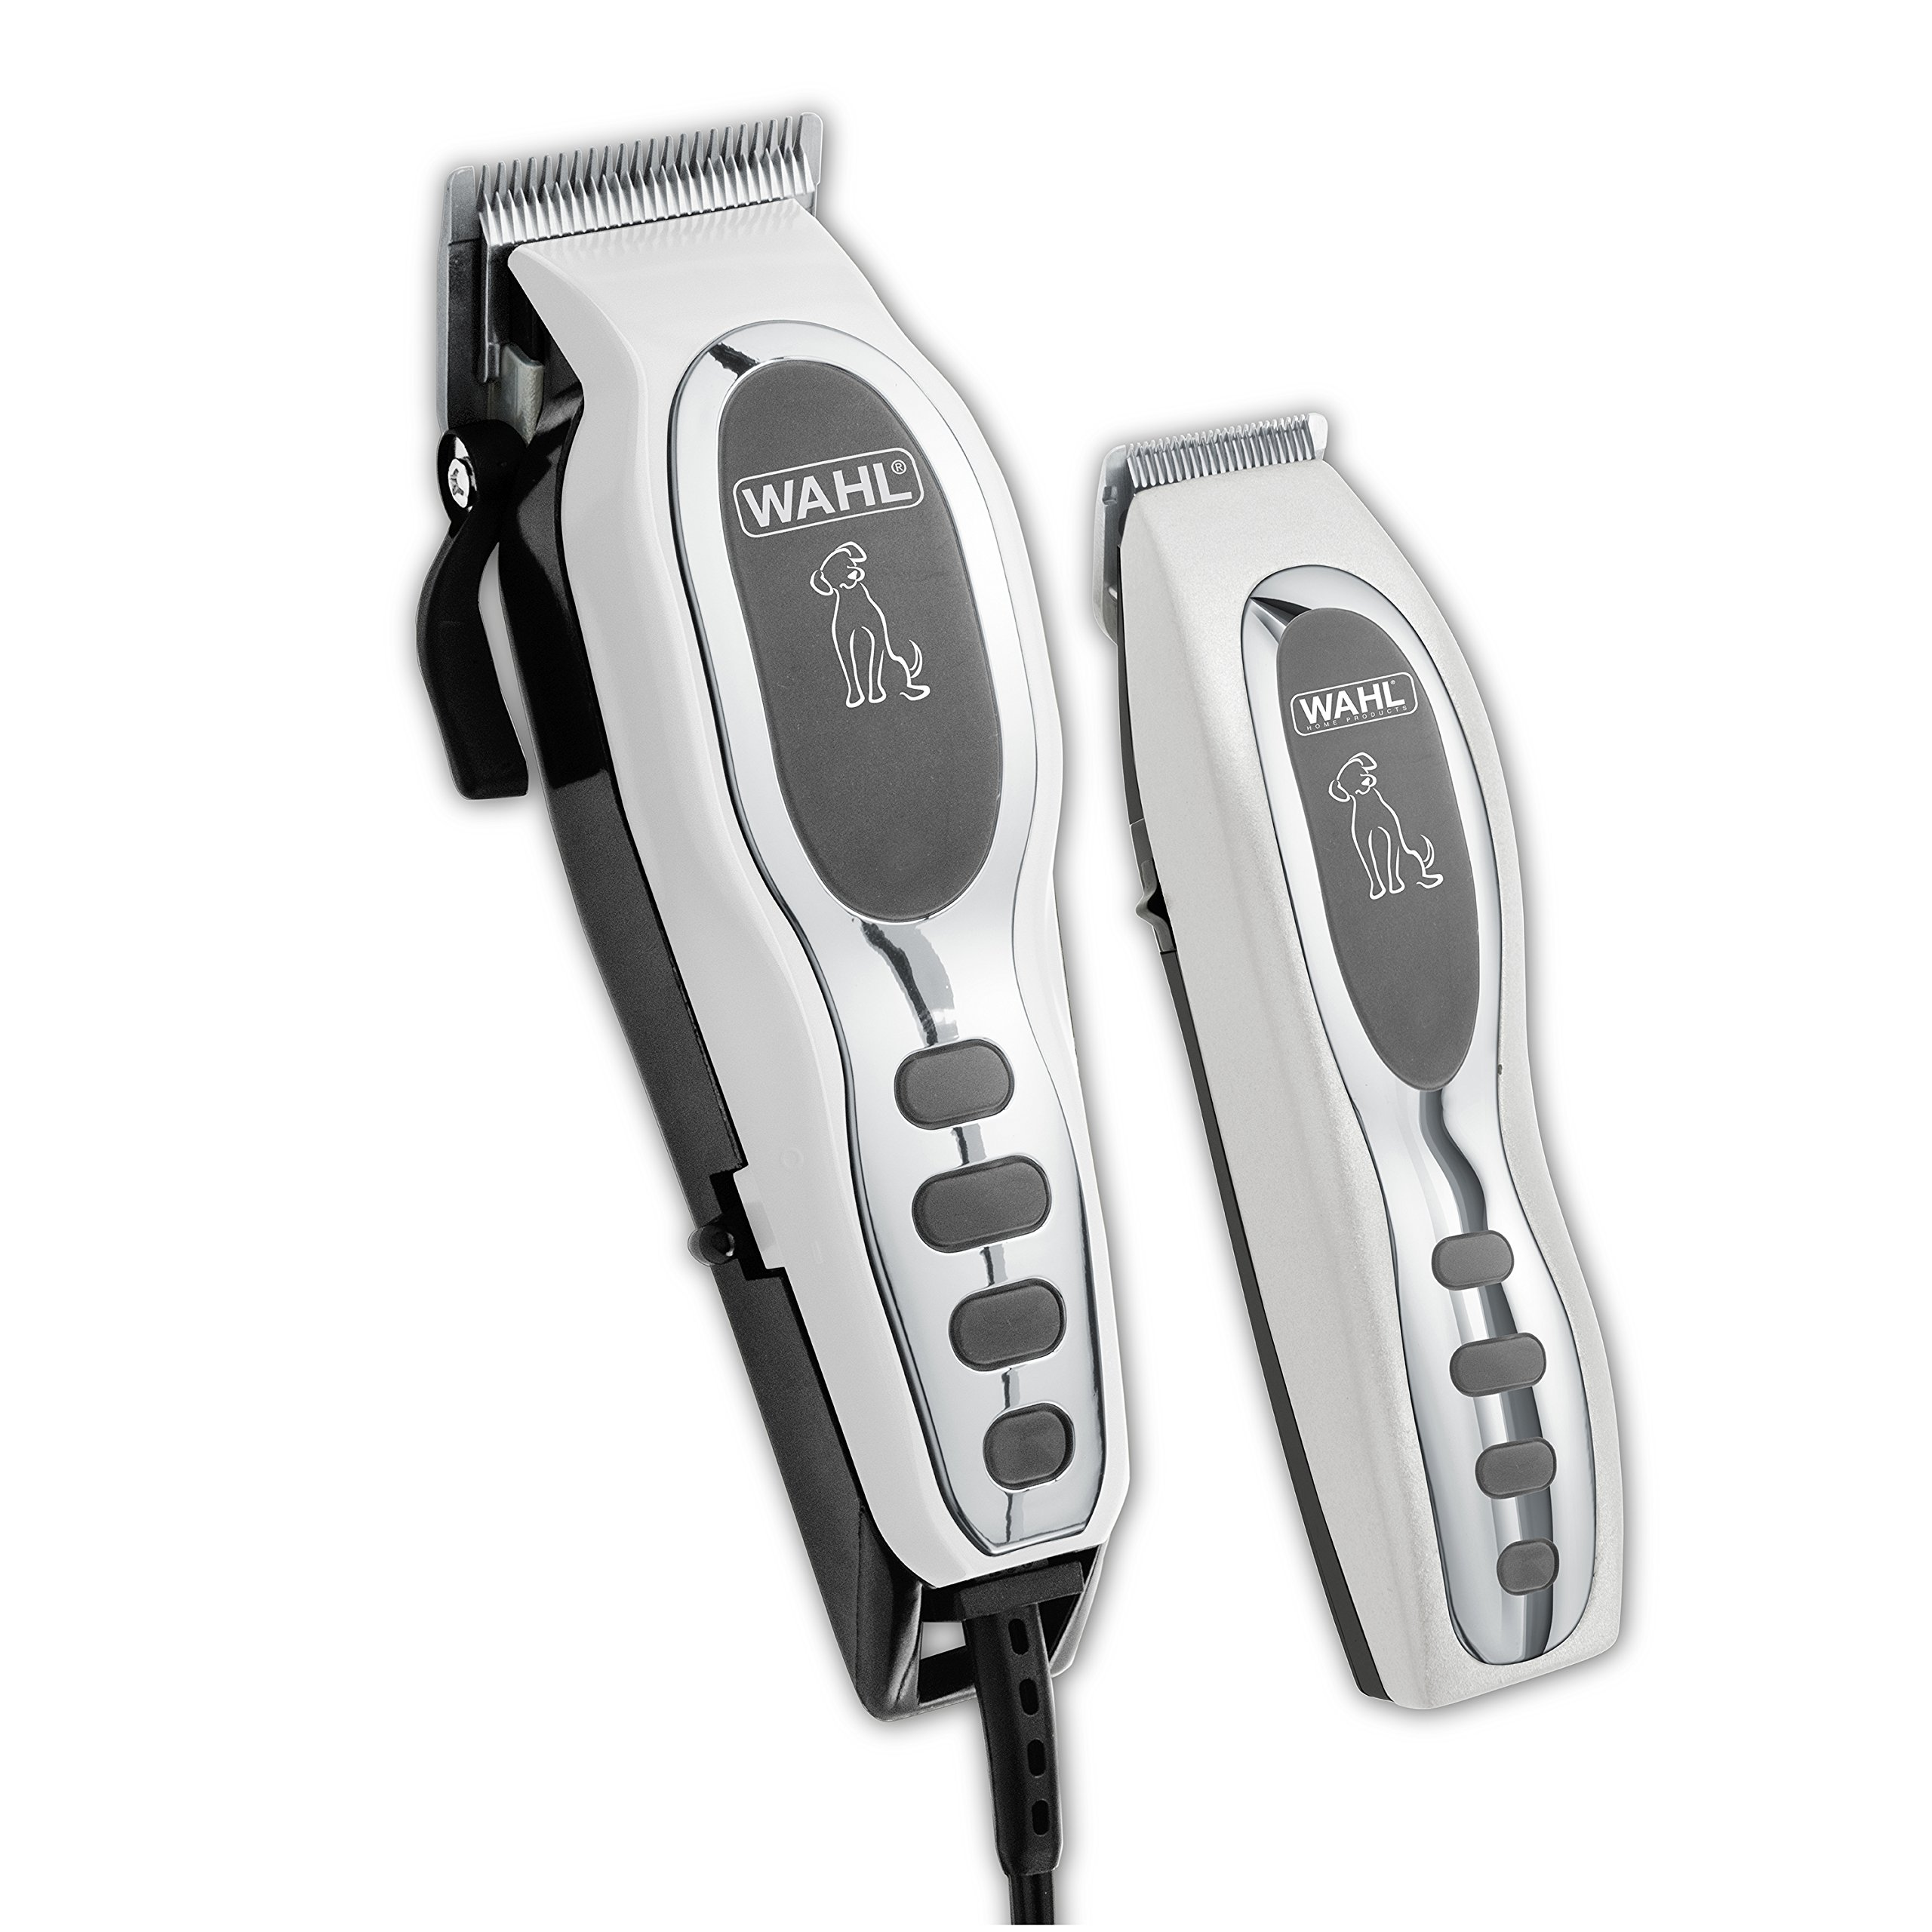 Wahl Pet-Pro Clipper & Trimmer Pet Grooming Combo Kit for Dogs and Cats: Comes with a corded Clipper and a battery operated Trimmer, by The Brand Used By Professionals. #9284